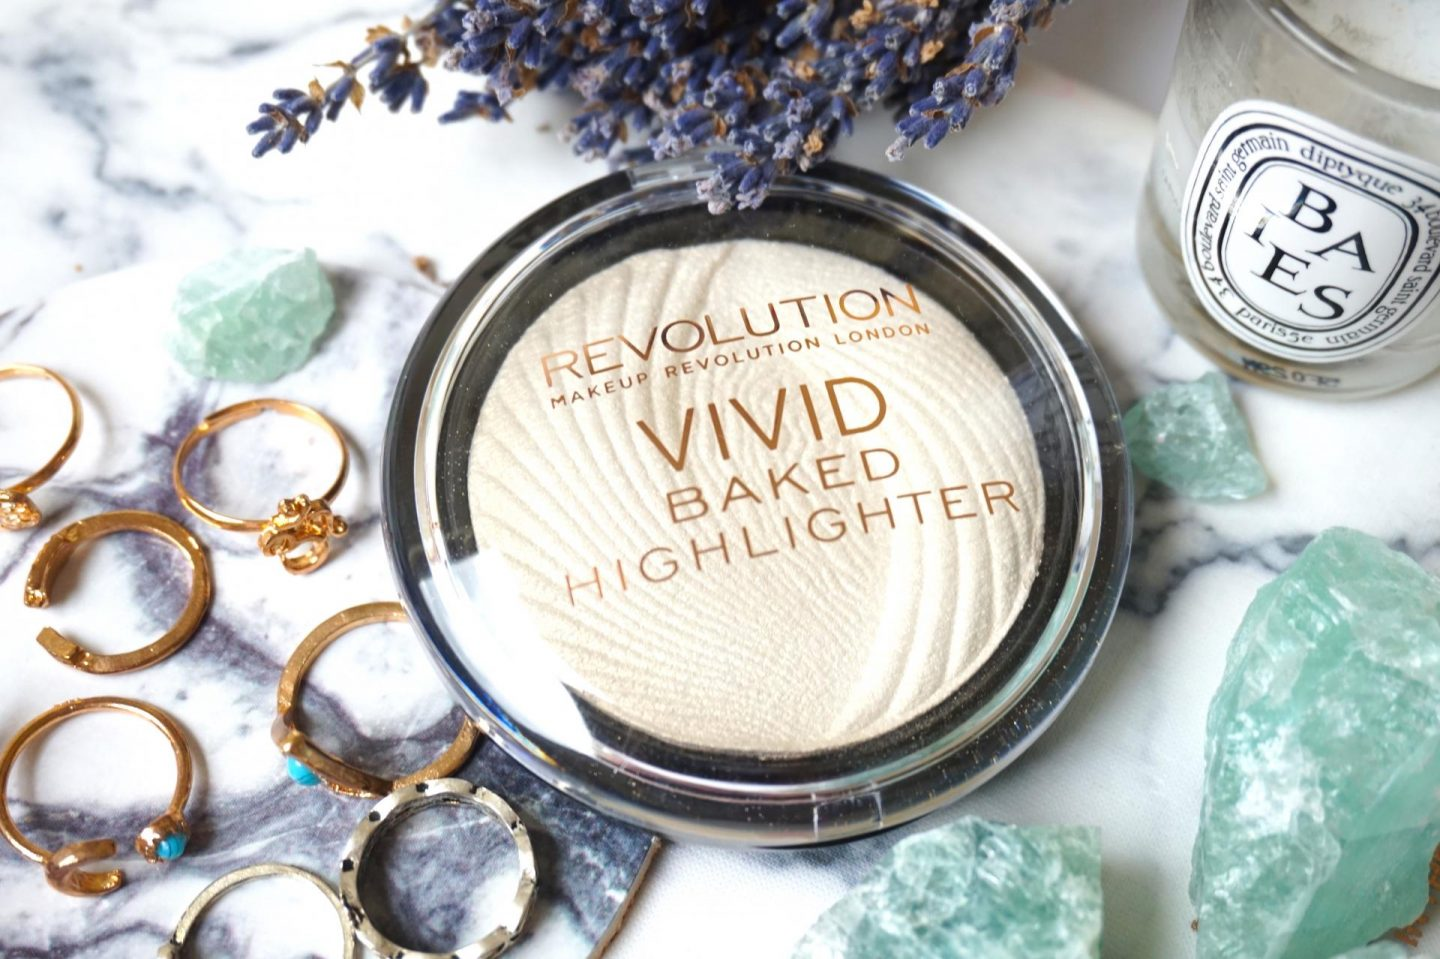 Makeup Revolution London, Vivid Baked Highlighter